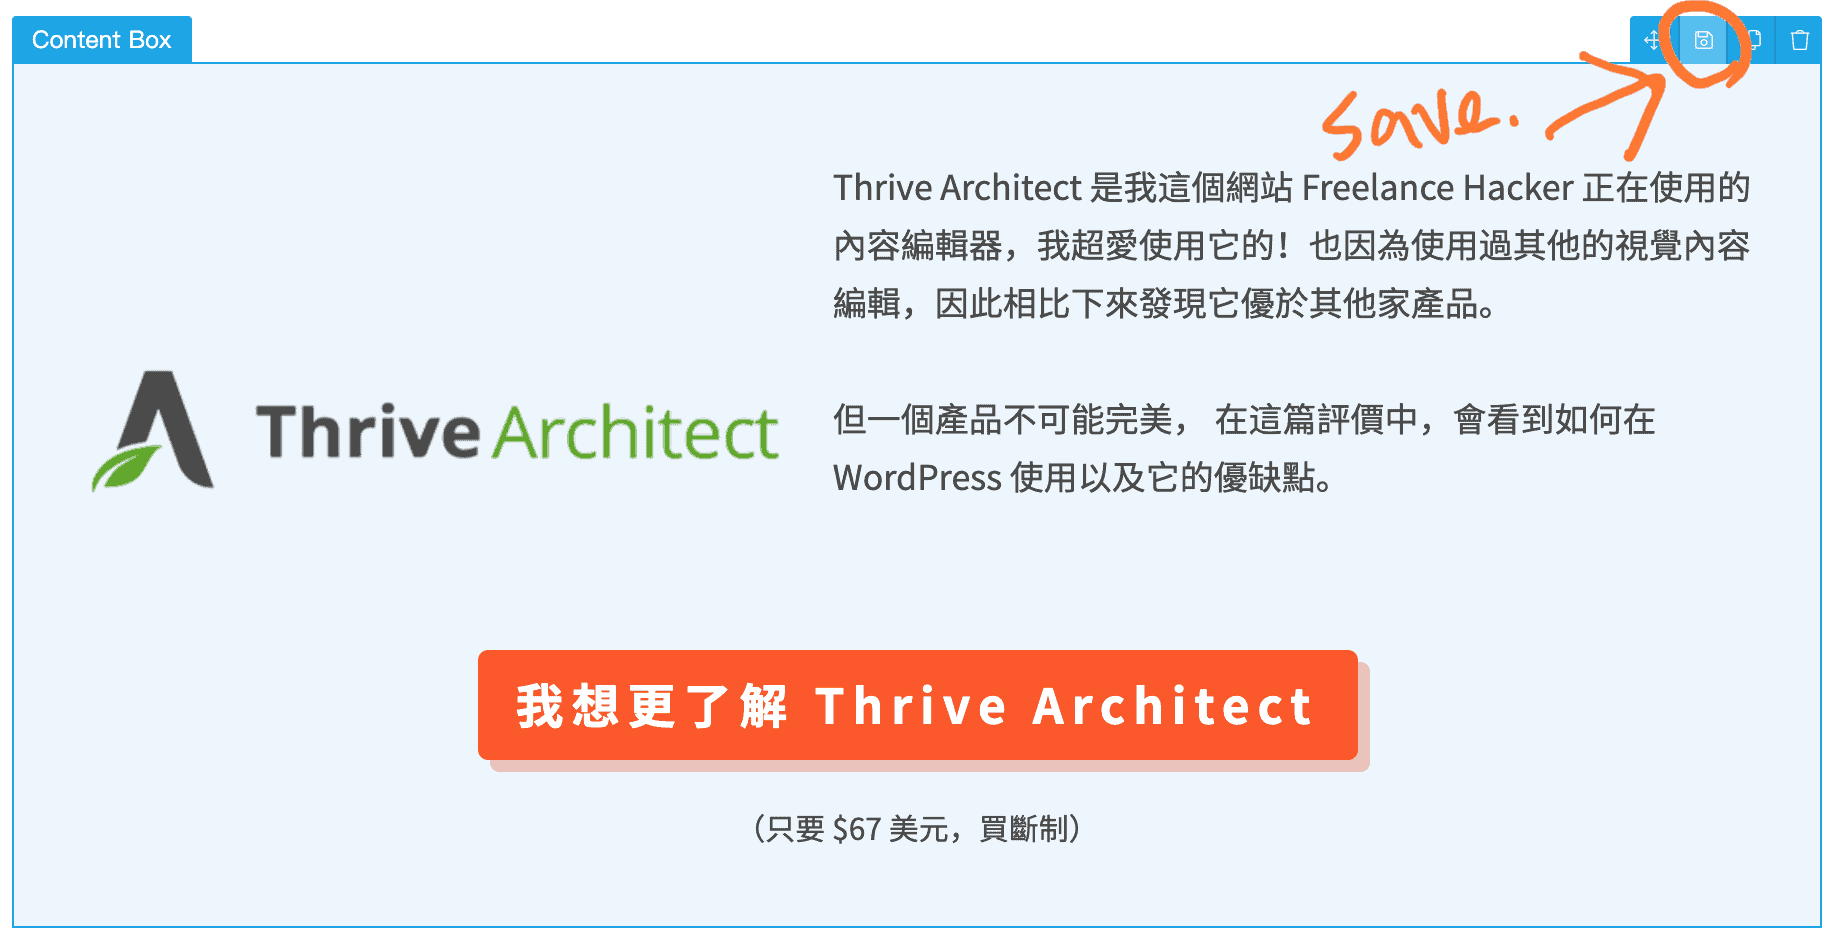 thrive-architect-儲存模板